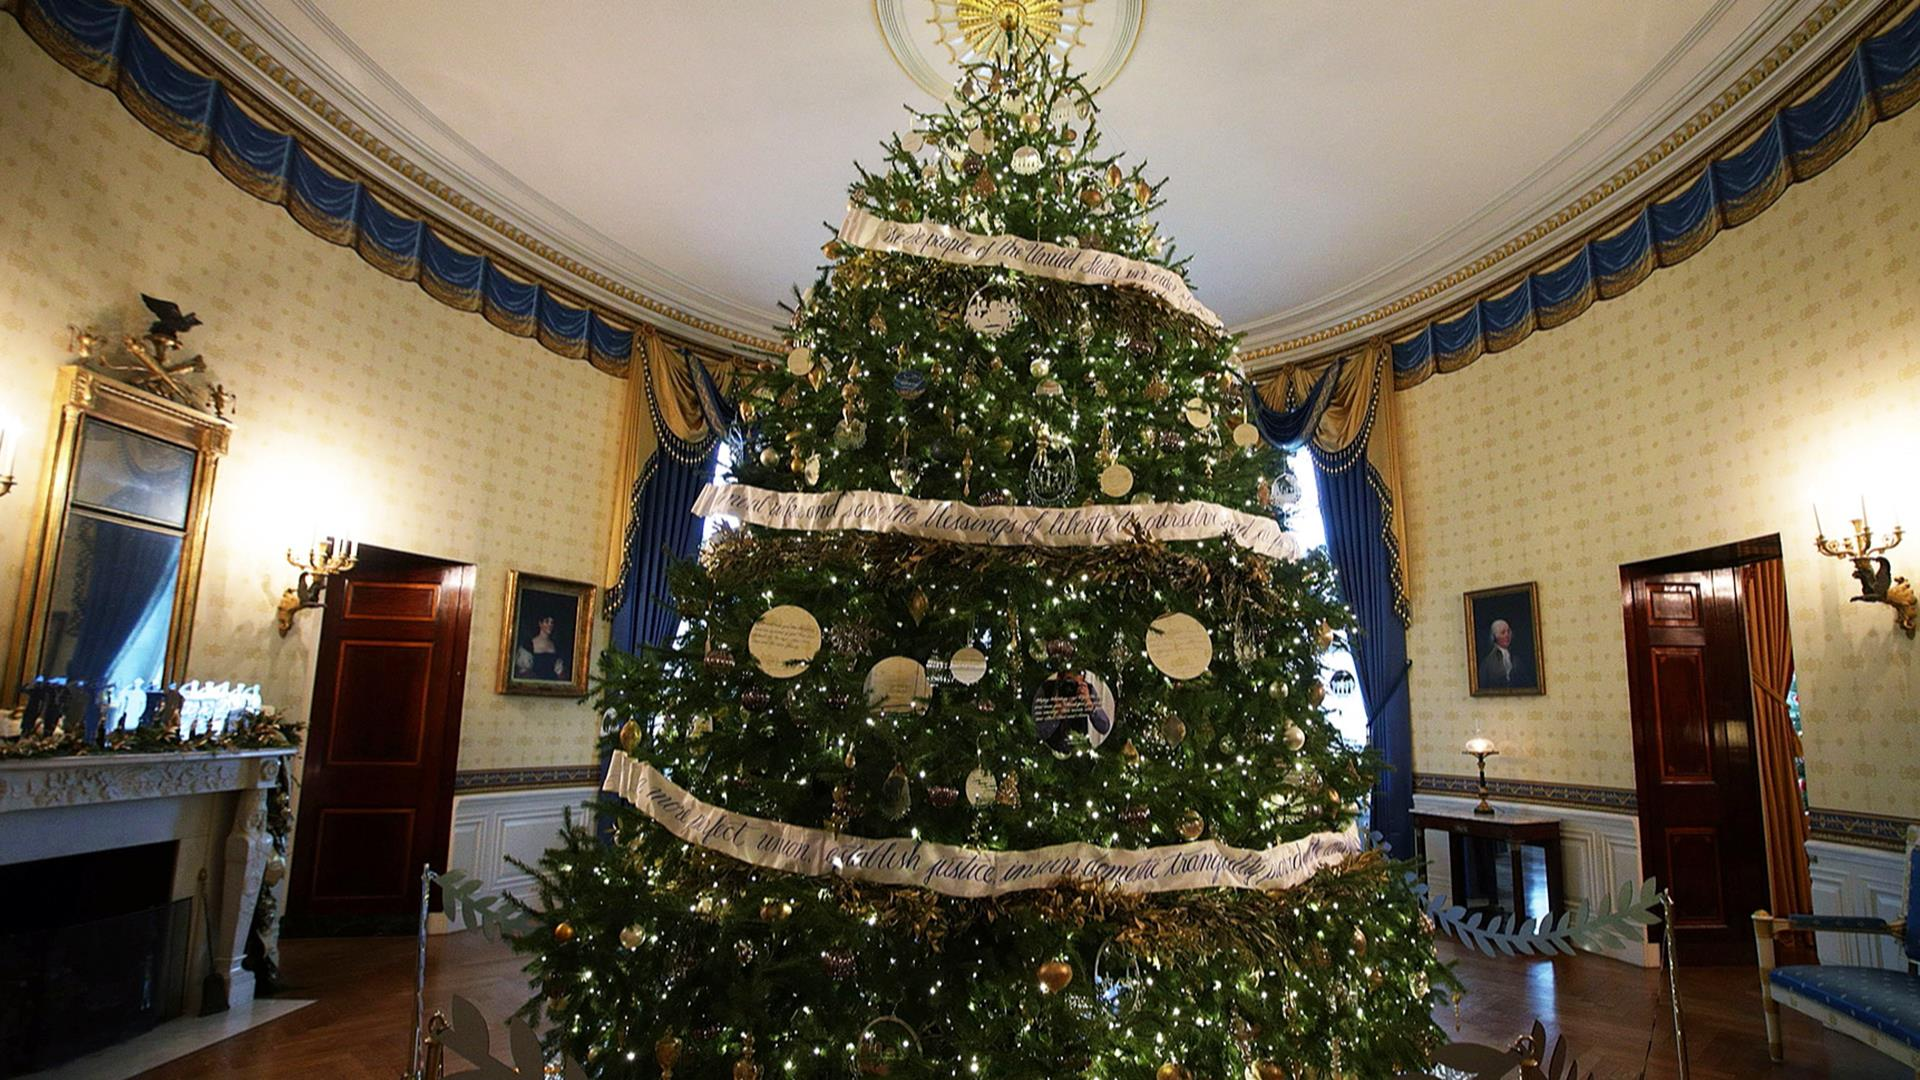 white house christmas display 2016 - White House Christmas Decorations 2016